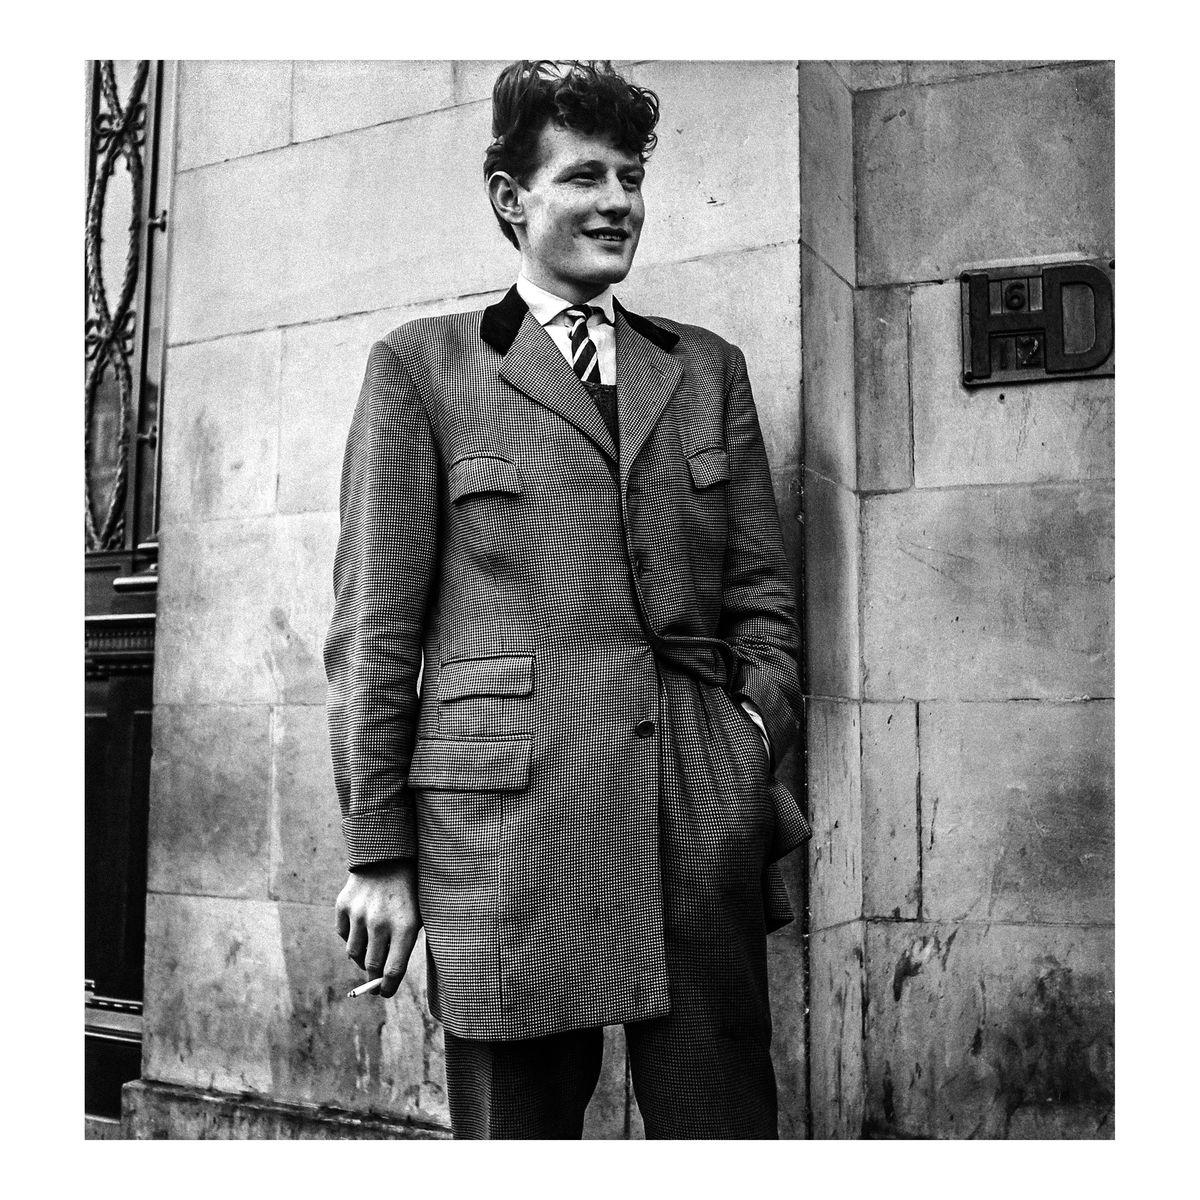 Teddy Boys and Teddy Girls, 1955